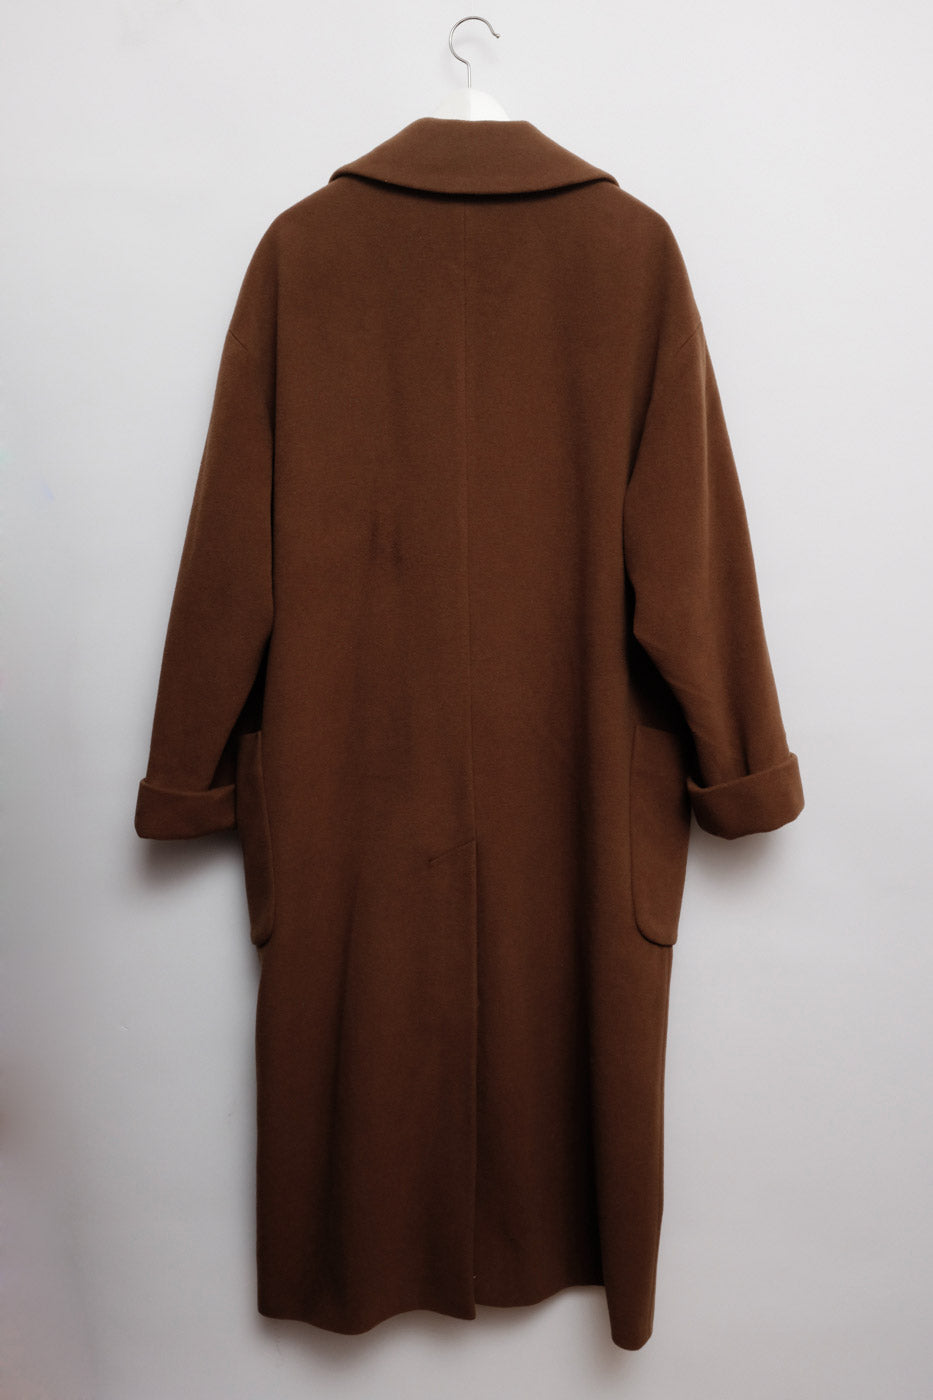 0010_BROWN CASHMERE WOOL MAXI COAT